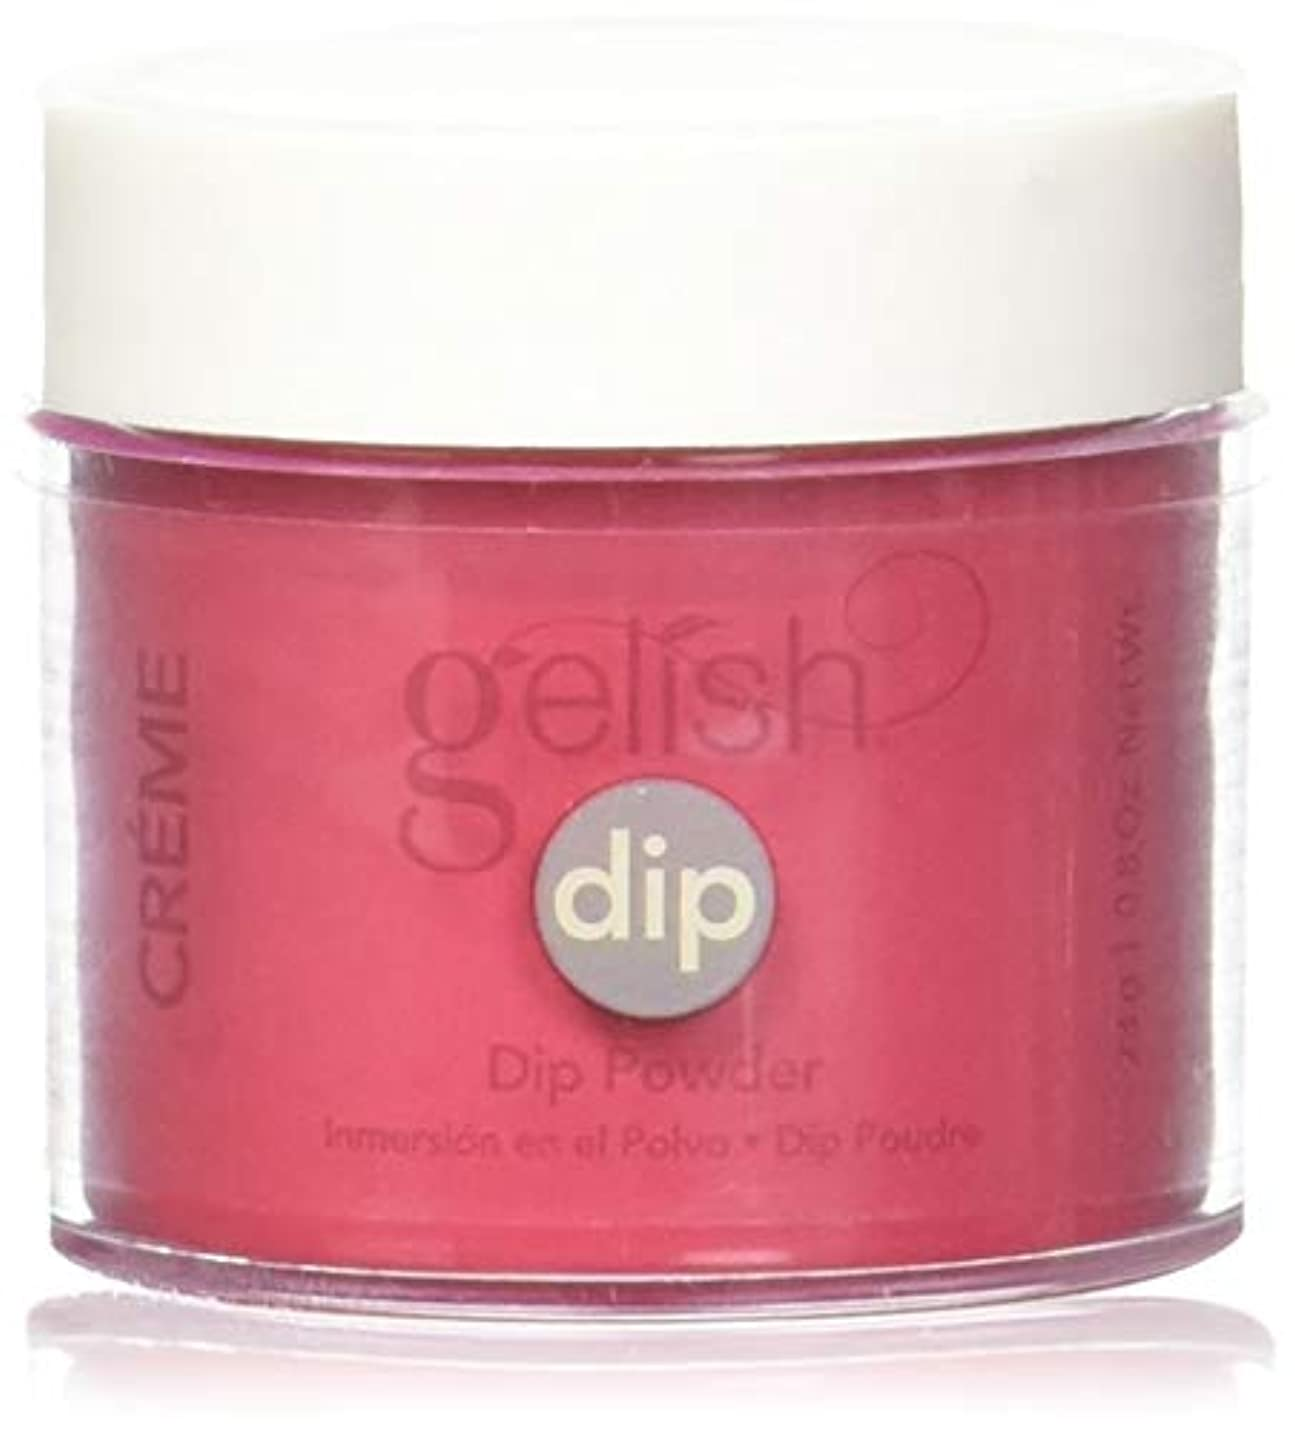 祝う名誉りHarmony Gelish - Acrylic Dip Powder - Hot Rod Red - 23g / 0.8oz